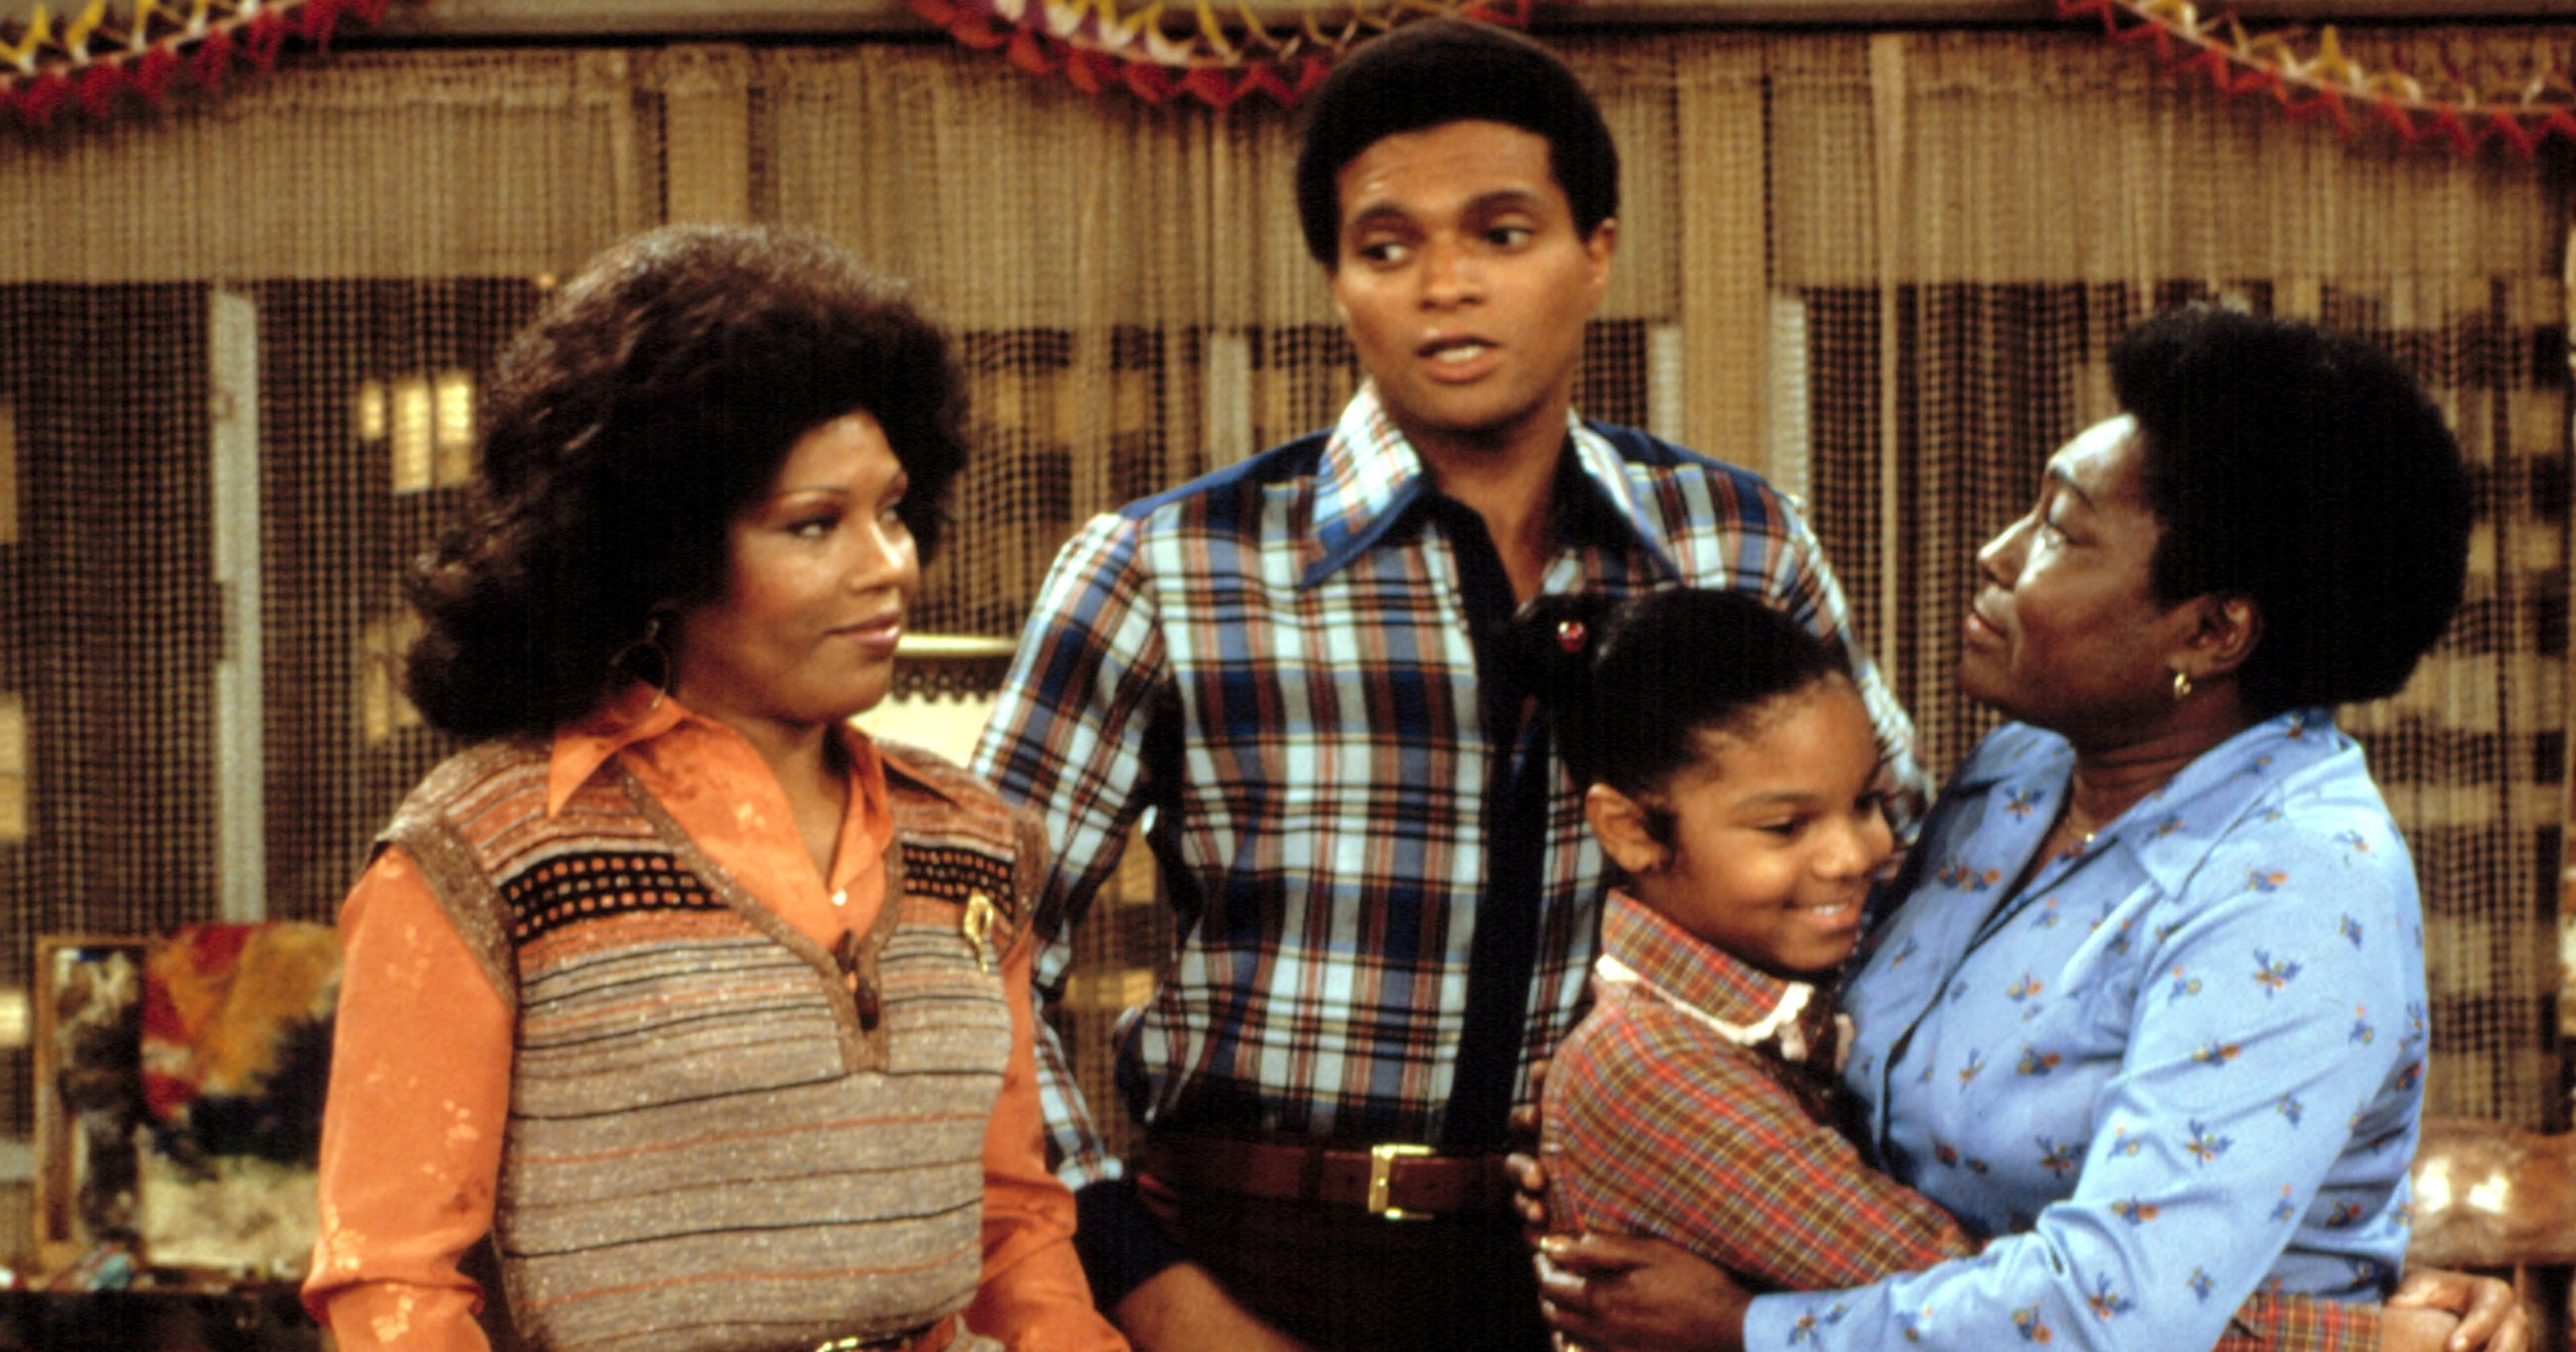 Good Times' actor Ben Powers dies at 64